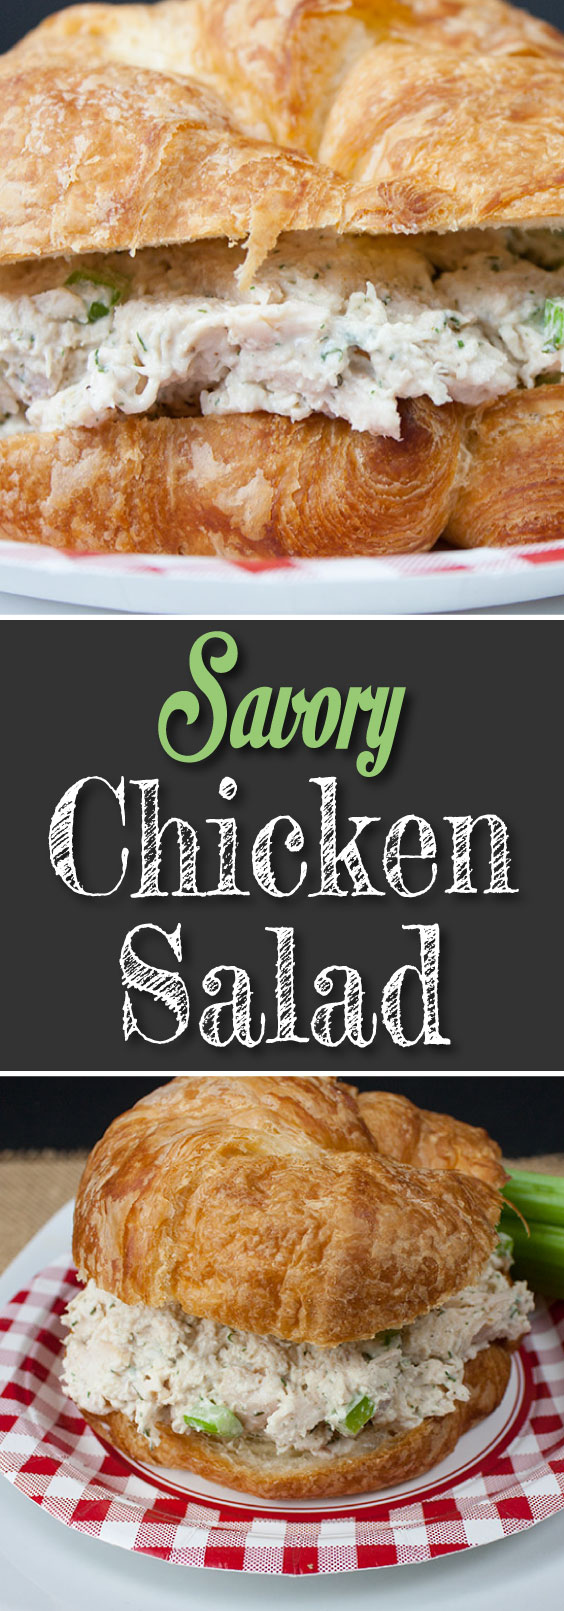 Savory Chicken Salad - Not your typical chicken salad recipe. No nuts, no fruit here! The best-tasting chicken salad! #chicken #salad #sandwiches #chickensalad